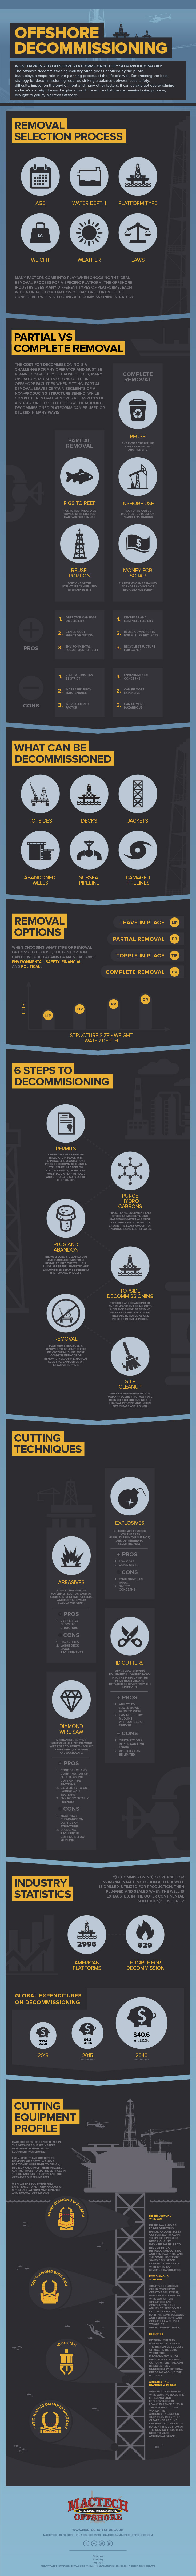 Offshore Decommissioning Process in 6 Steps